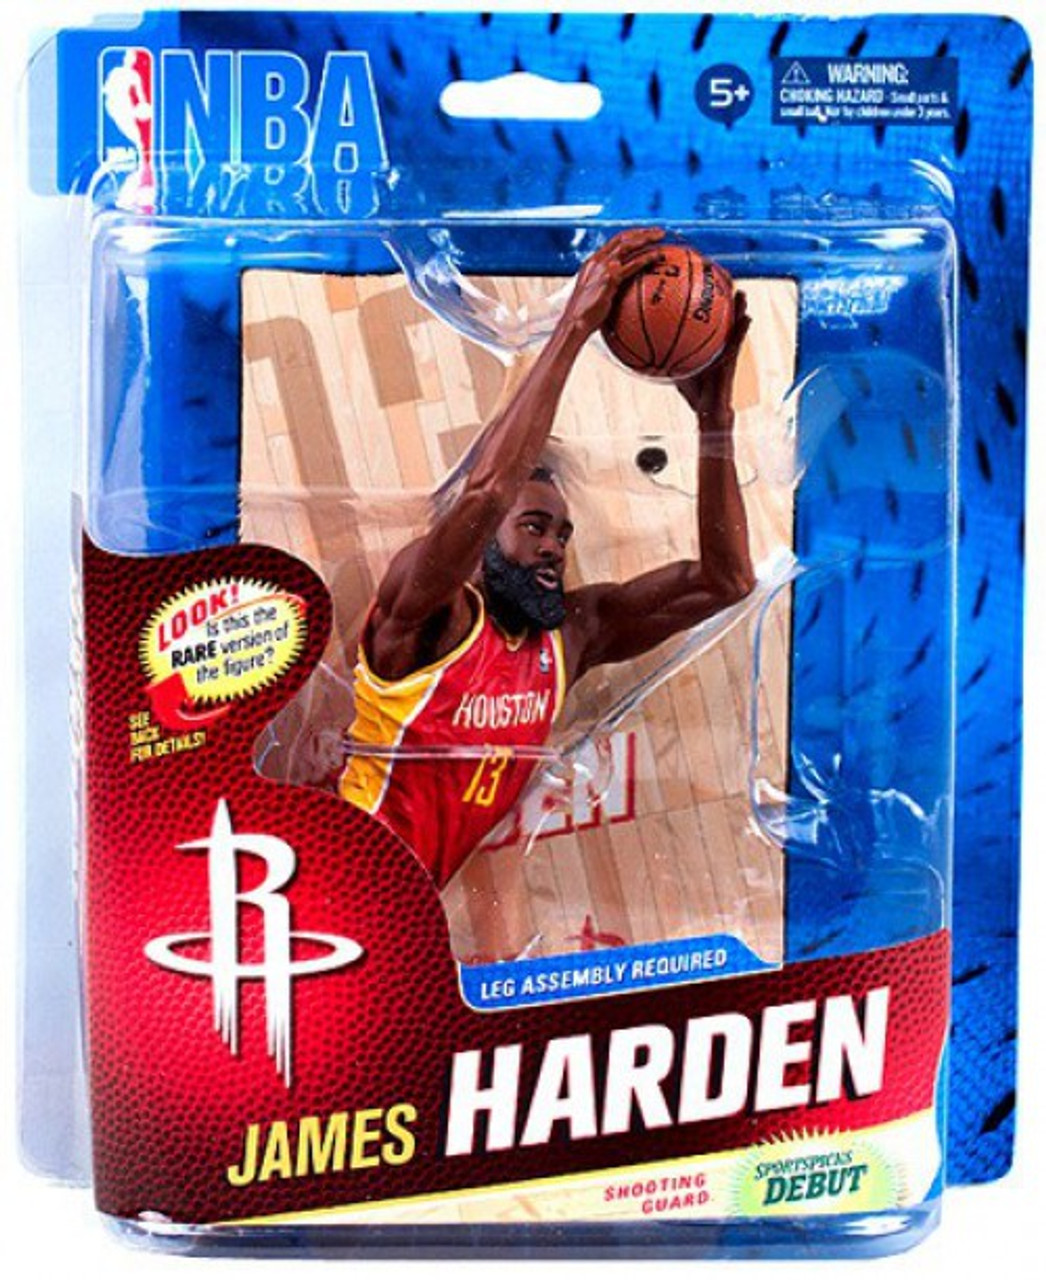 47cca582641 McFarlane Toys NBA Houston Rockets Sports Picks Series 23 James Harden  Action Figure  Red Jersey